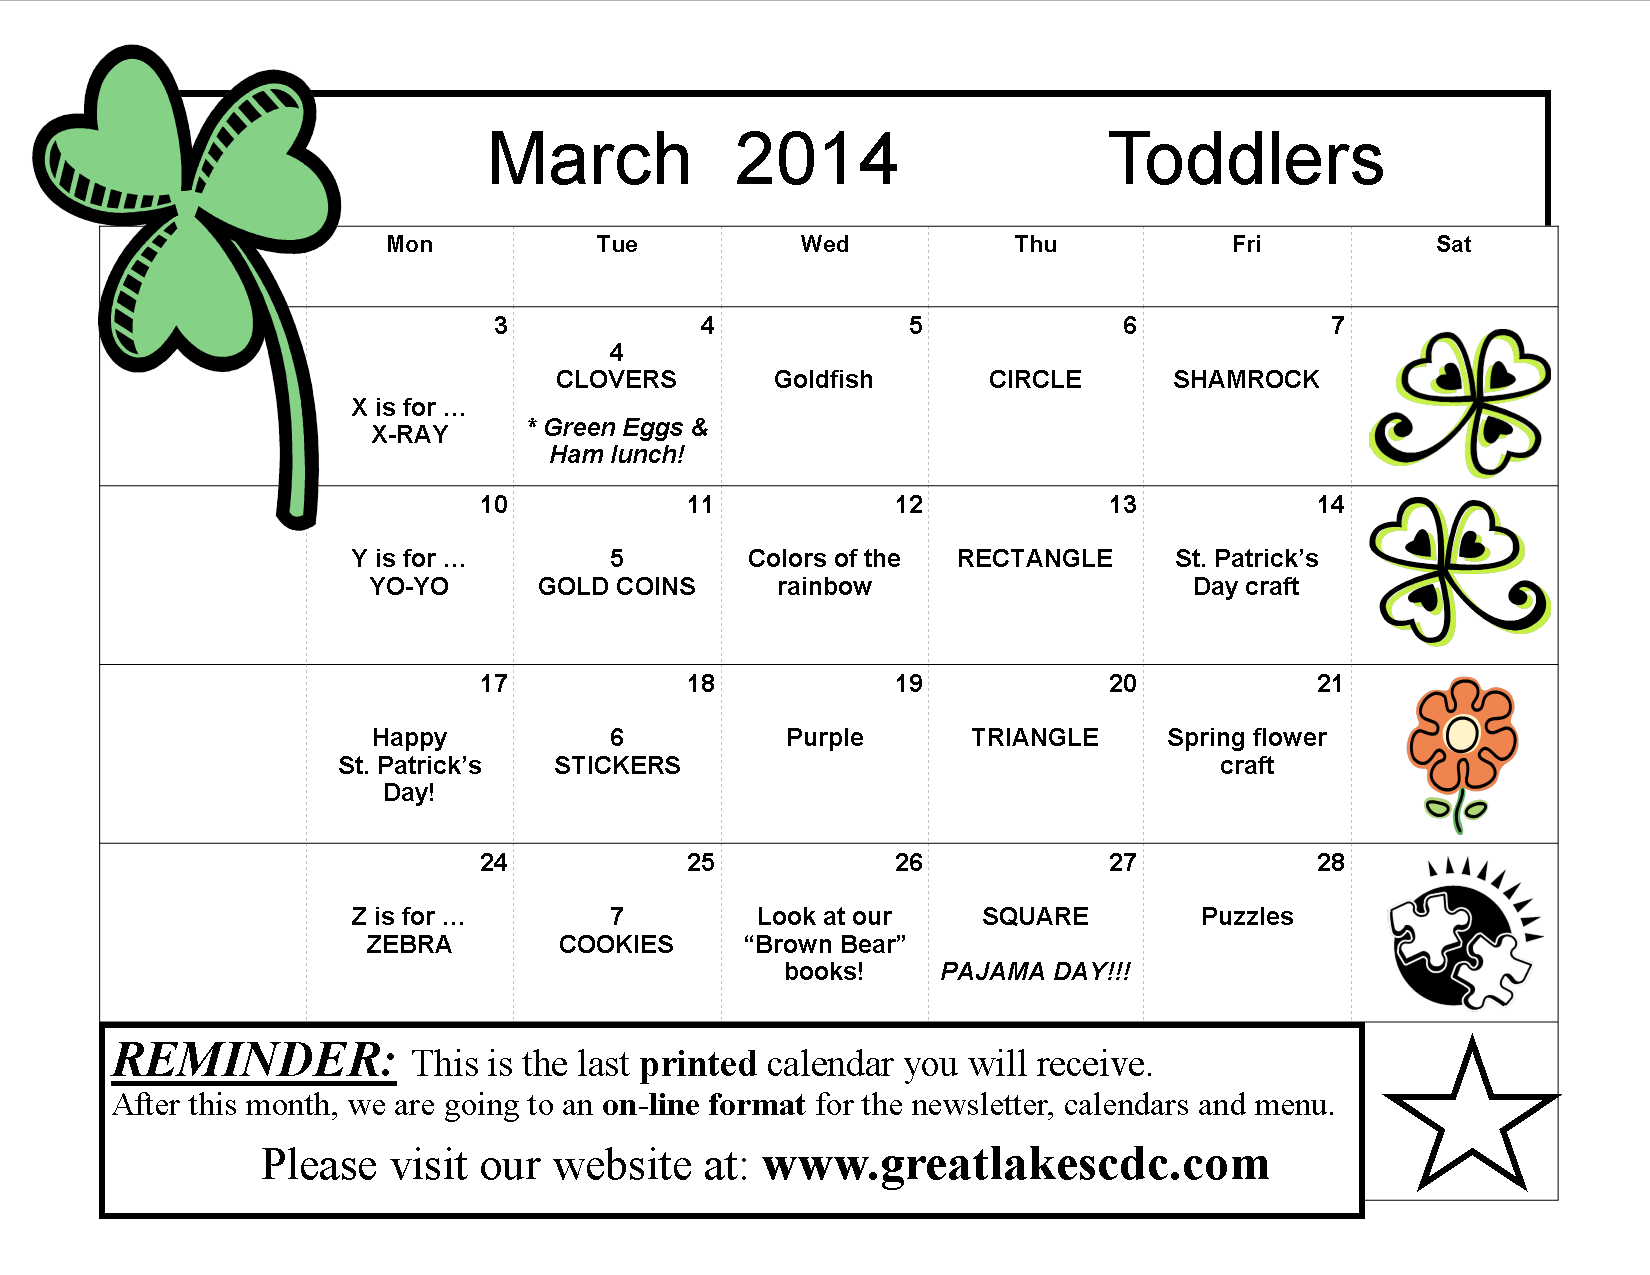 March 2014 Toddlers